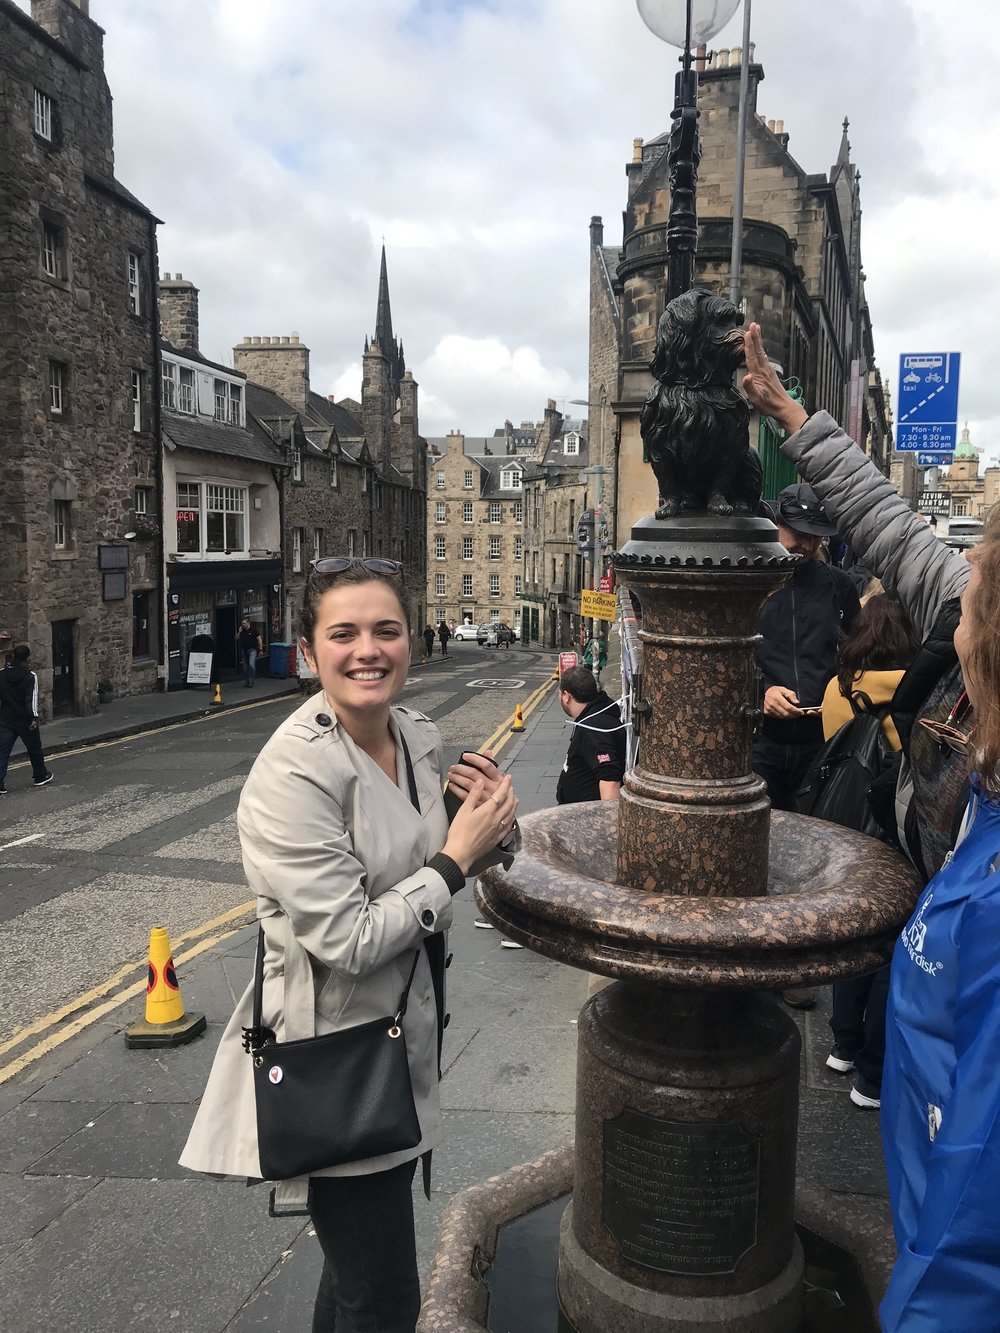 I made sure to visit greyfriars bobby for my dose of good luck!